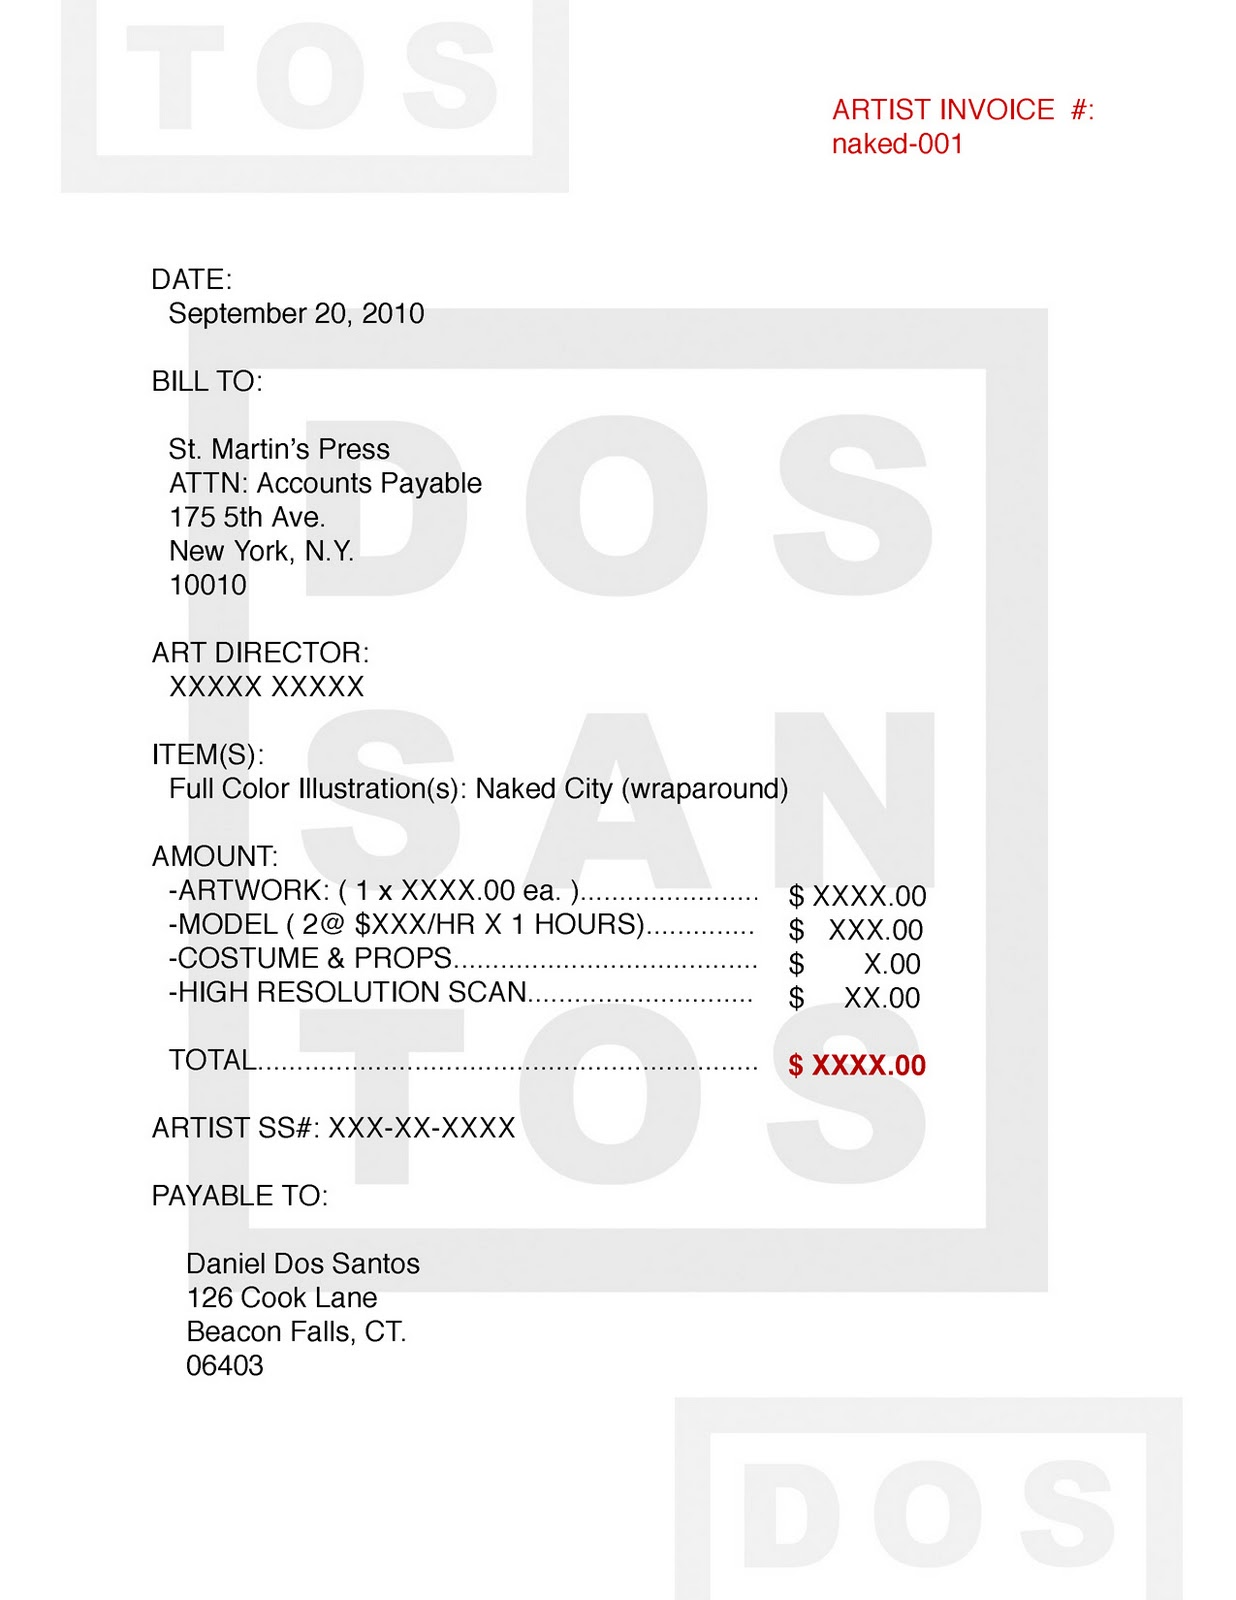 Usdgus  Outstanding Muddy Colors Invoices With Likable I Believe That This Format Contains All The Pertinent Information That A Good Invoice Should Have And Can Serve As A Decent Template For Your Own With Charming Make A Fake Receipt Also Paid Receipt In Addition Lost Receipt Form And Does Gmail Have Read Receipt Option As Well As Ikea Returns Without Receipt Additionally Electronic Receipt From Muddycolorsblogspotcom With Usdgus  Likable Muddy Colors Invoices With Charming I Believe That This Format Contains All The Pertinent Information That A Good Invoice Should Have And Can Serve As A Decent Template For Your Own And Outstanding Make A Fake Receipt Also Paid Receipt In Addition Lost Receipt Form From Muddycolorsblogspotcom